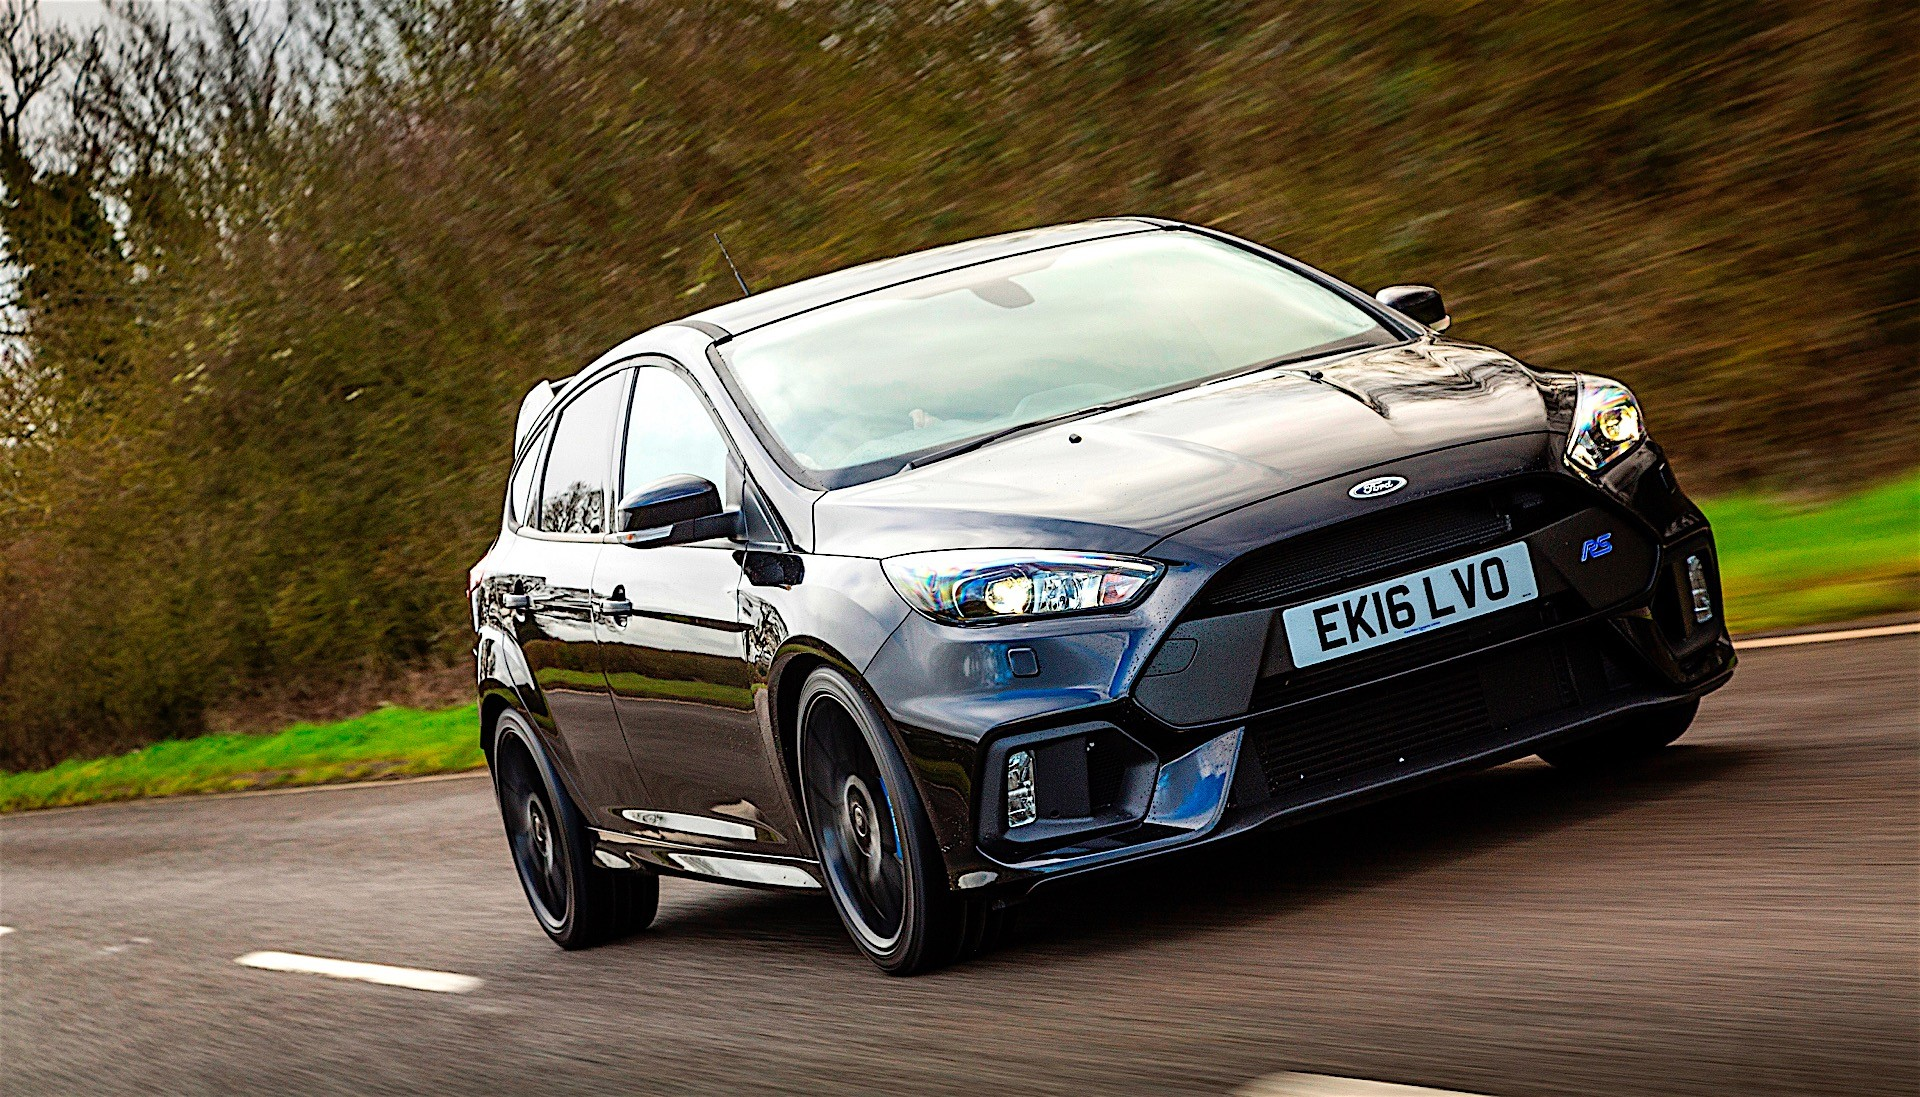 Mountune M Upgrade Turns Ford Focus Rs Into An Uber Hatchback on 10 Liter Engine